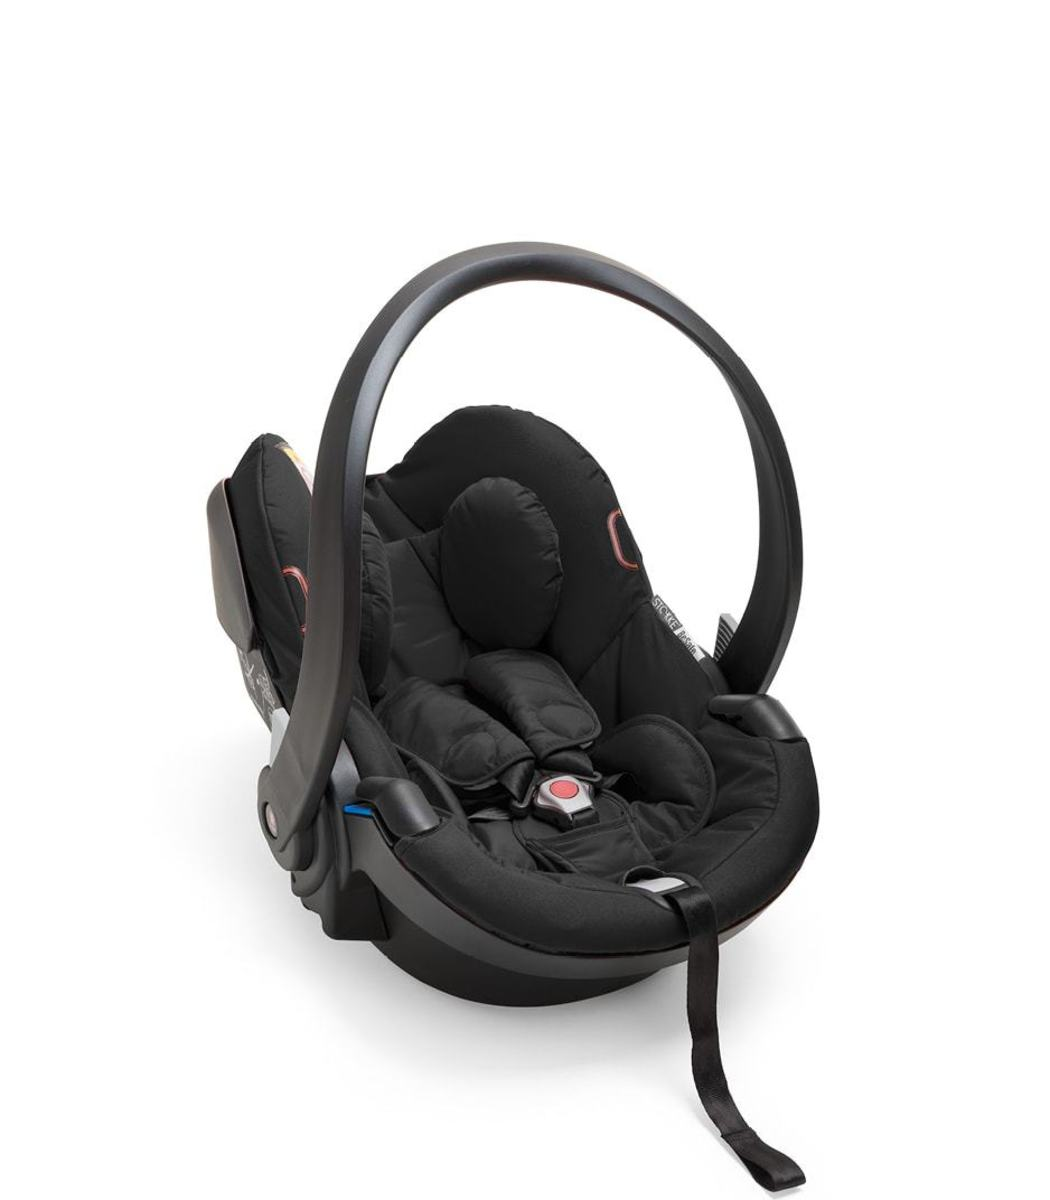 Stokke Car Seats Category